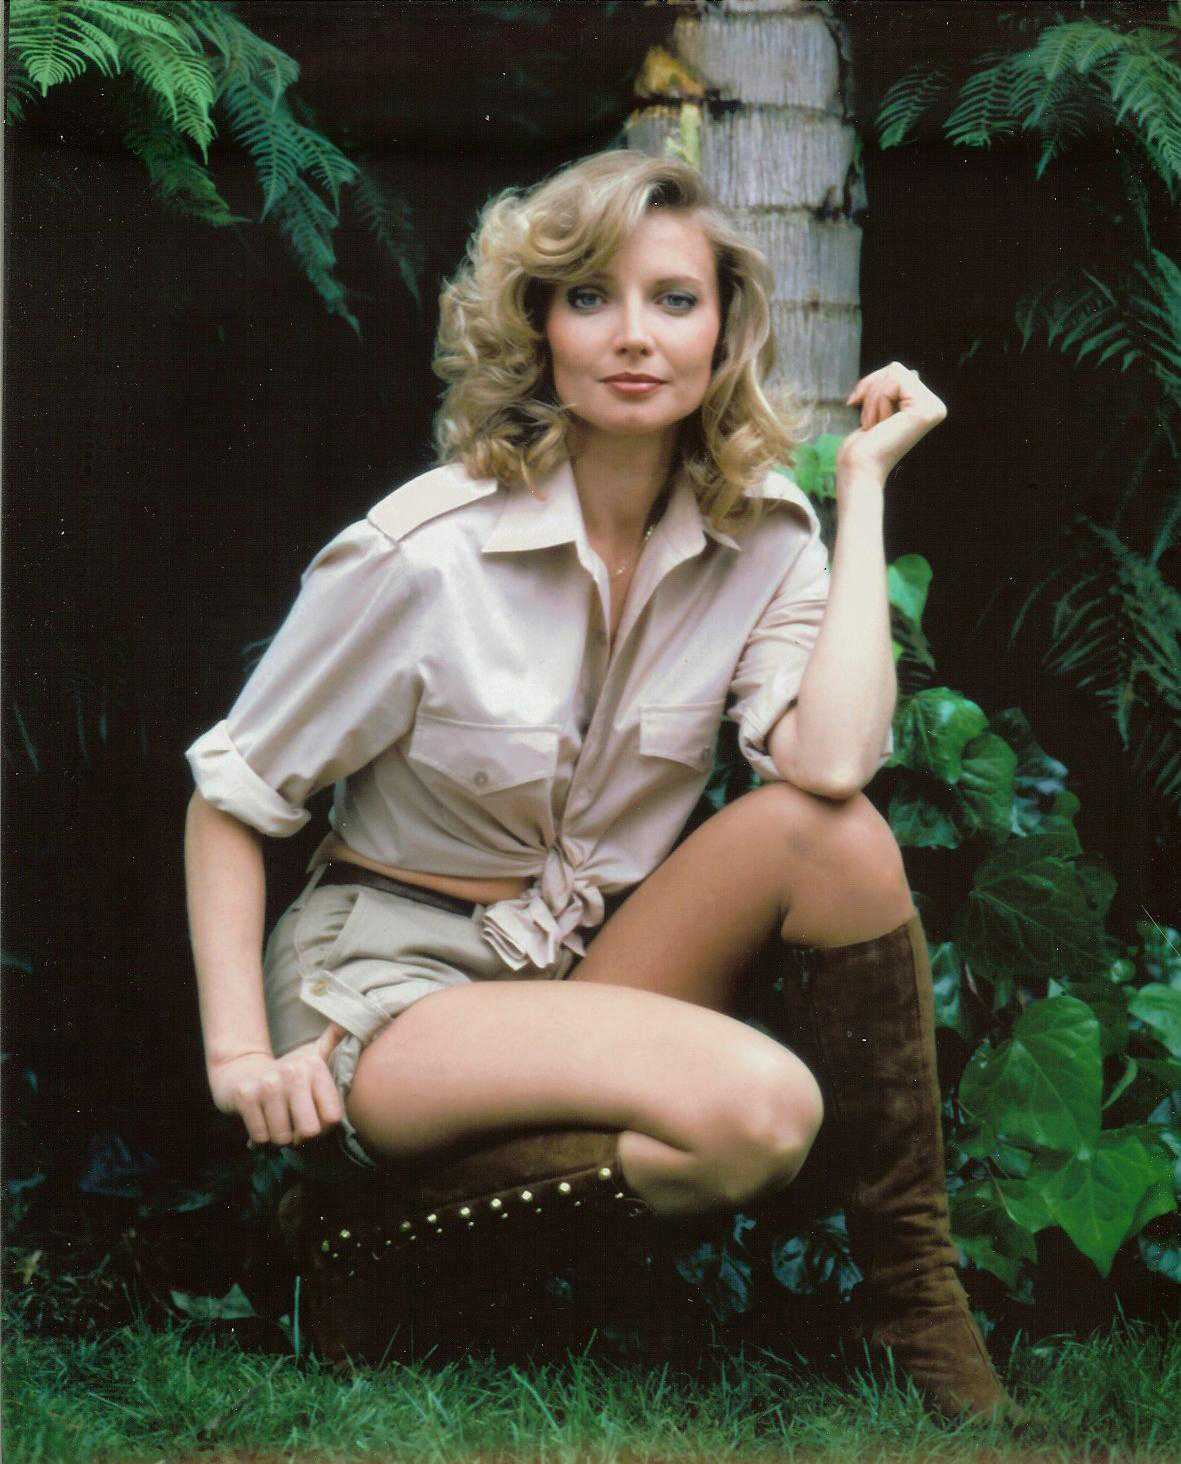 cindy morgan hot thighs